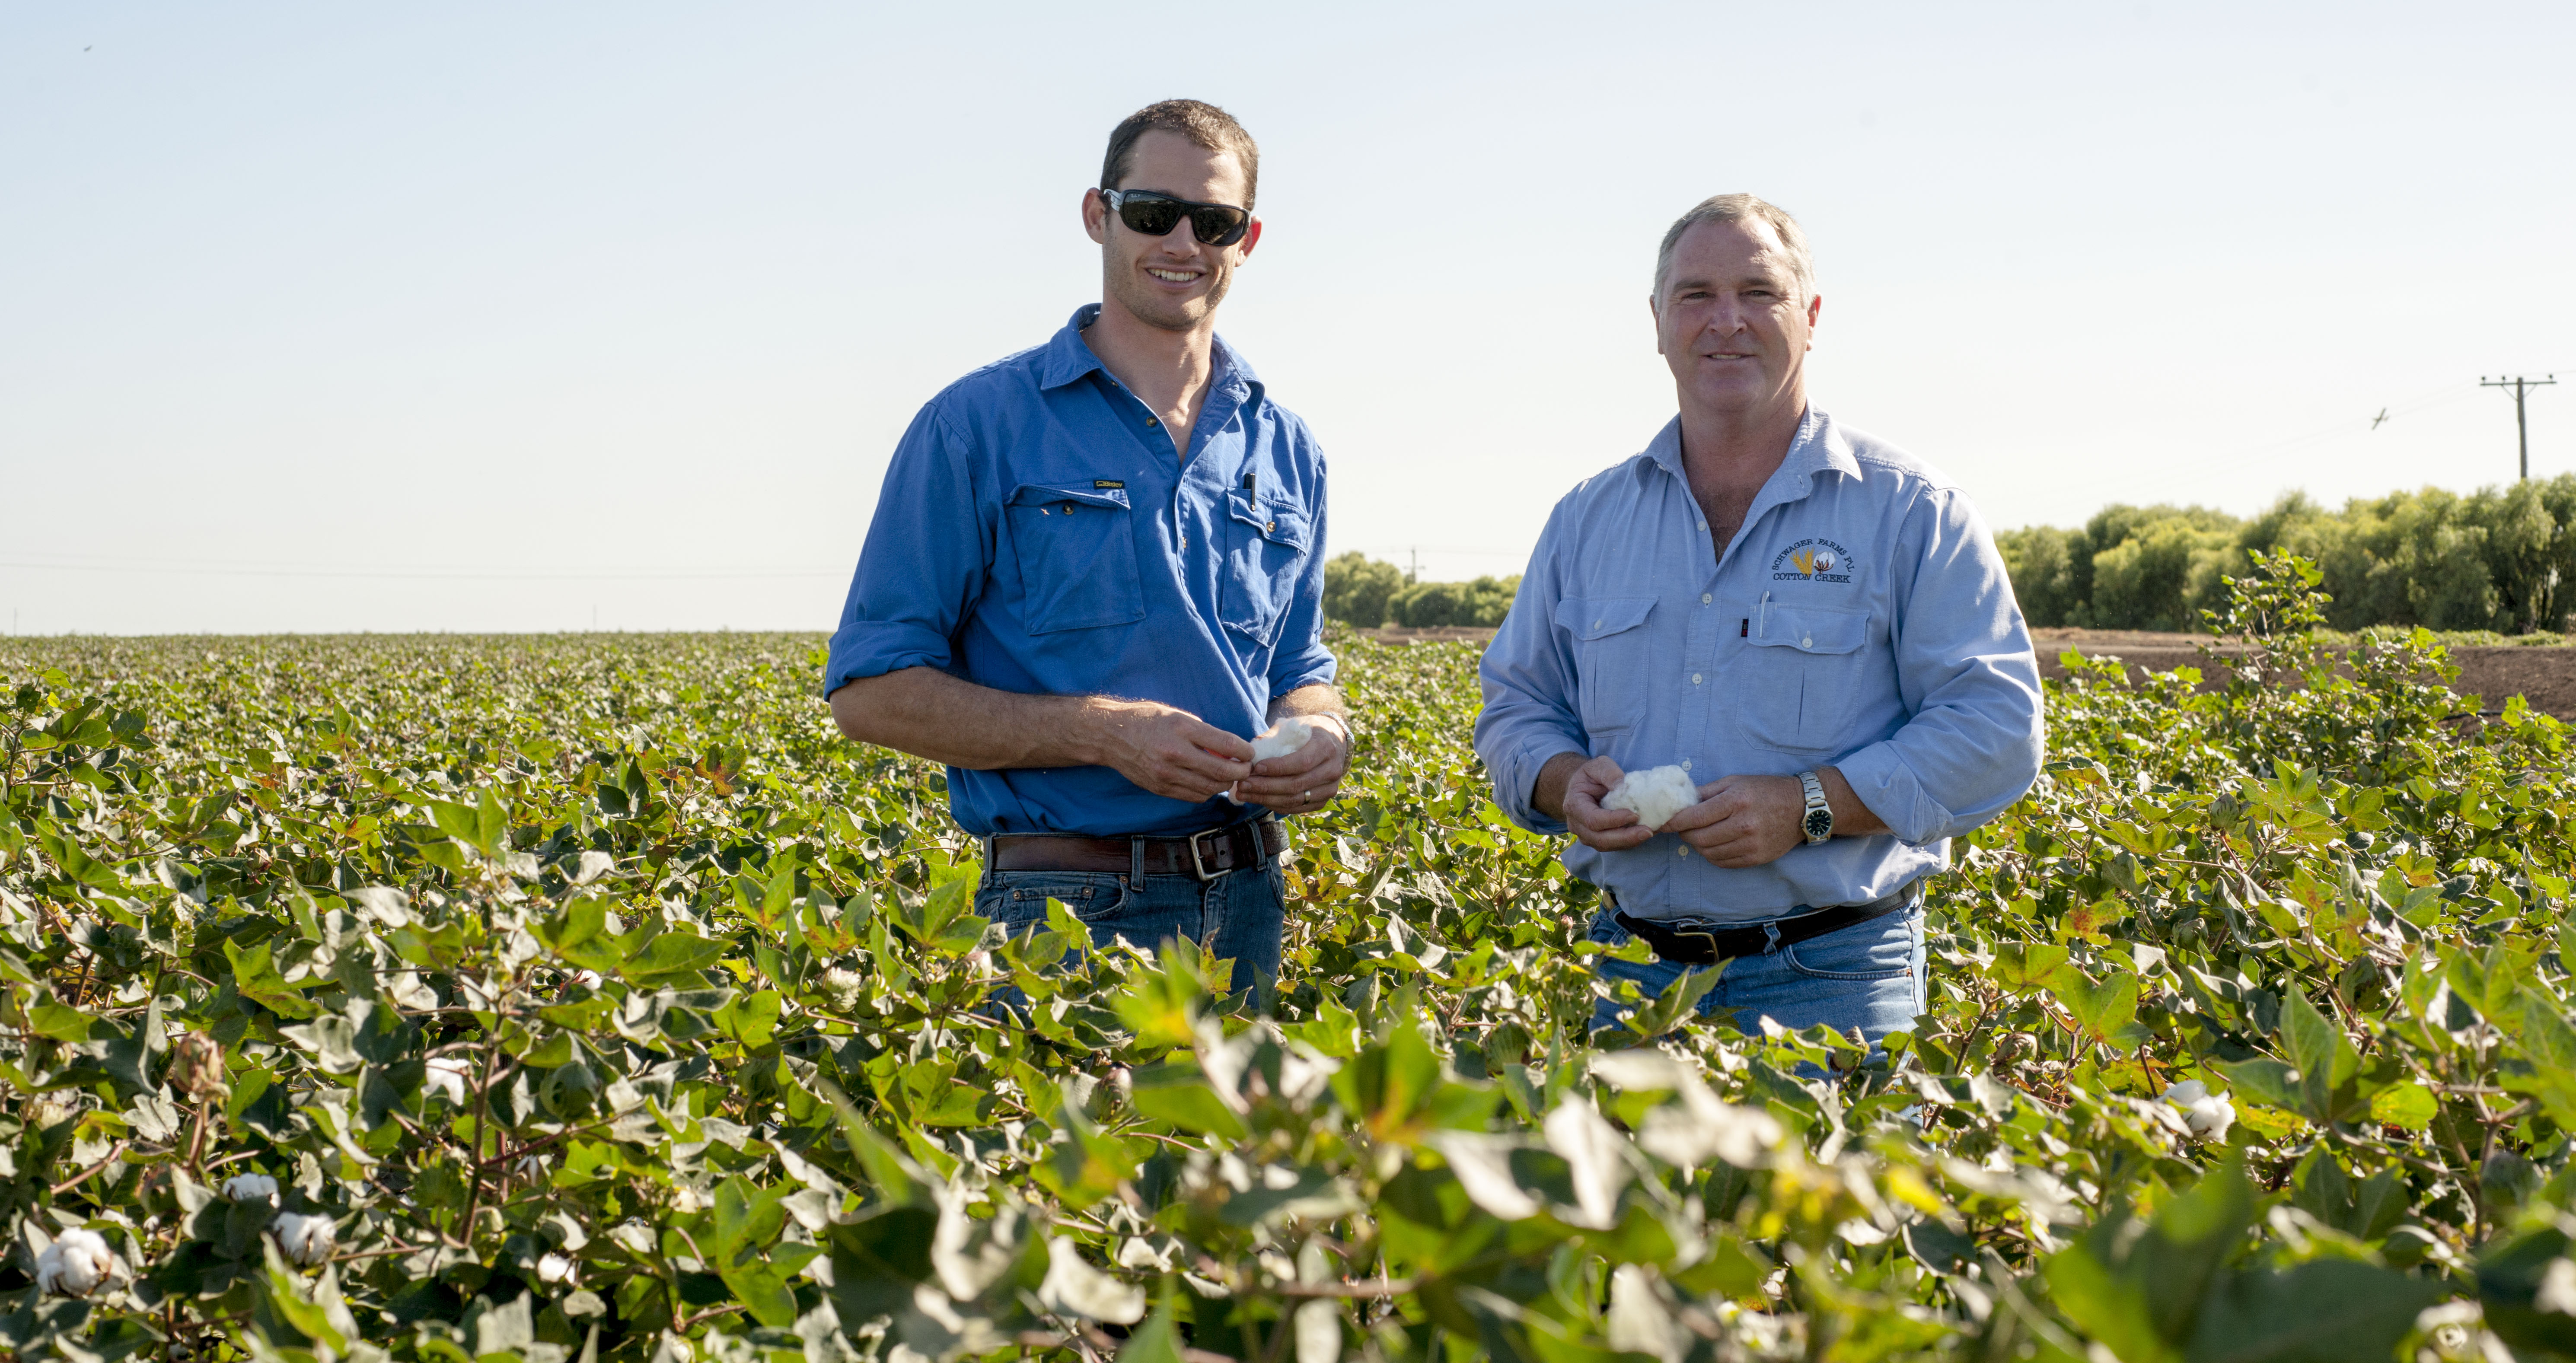 Two people standing in a cotton field holding a cotton boll.